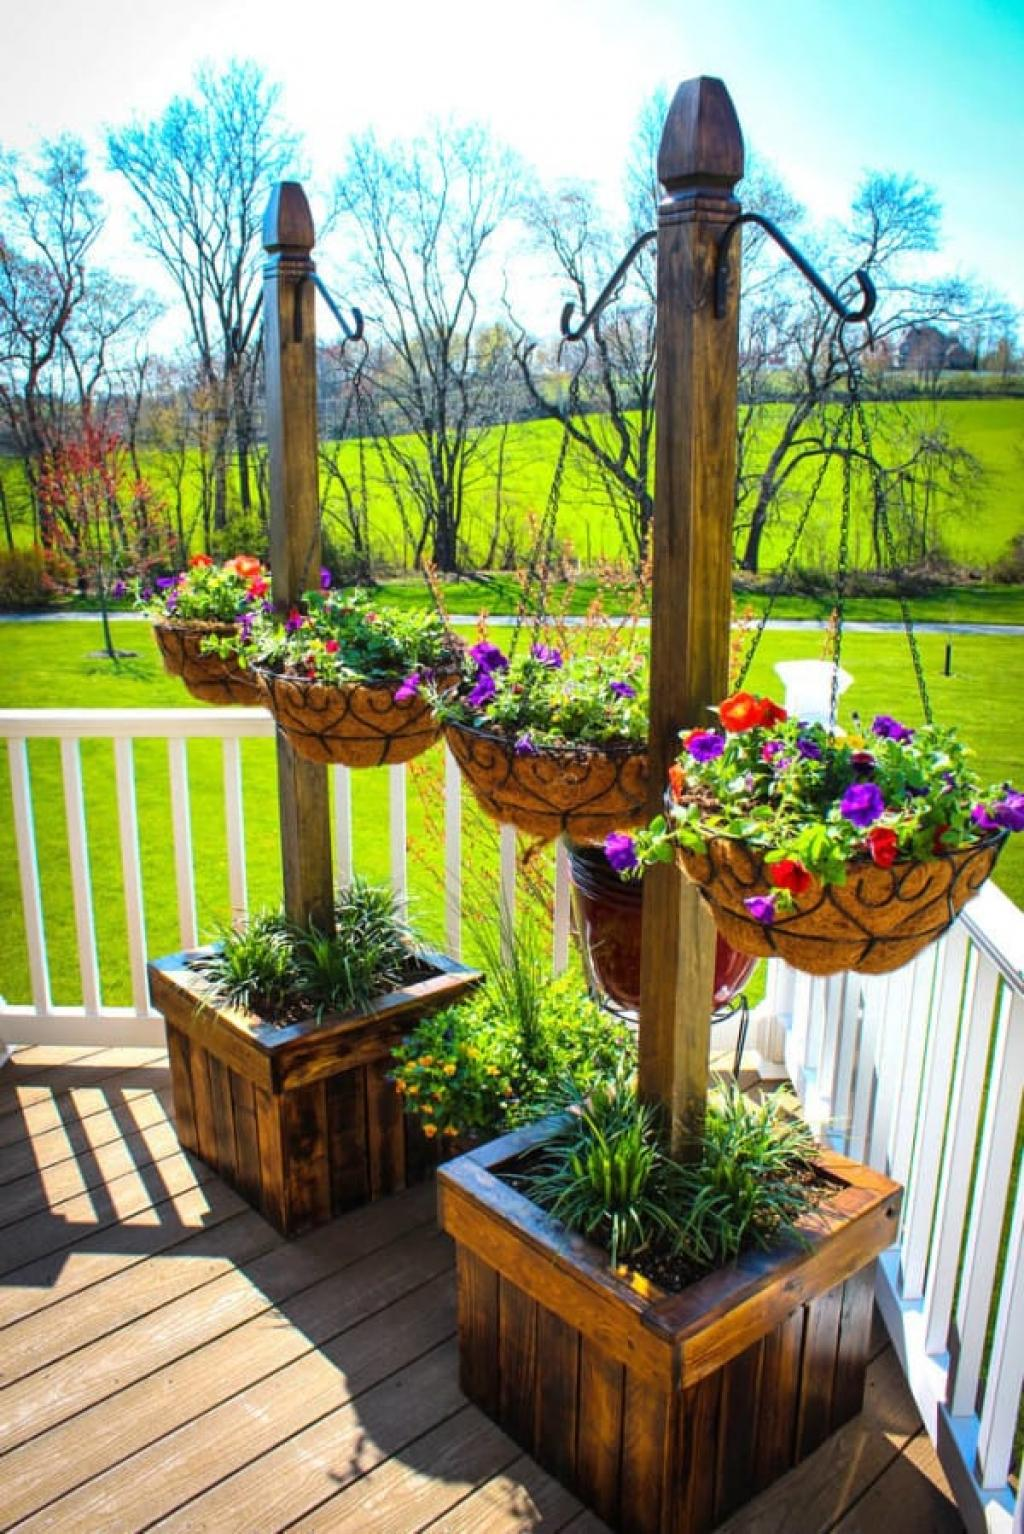 Backyard Landscape: 16 Amazing DIY Patio Decoration Ideas - Style ...